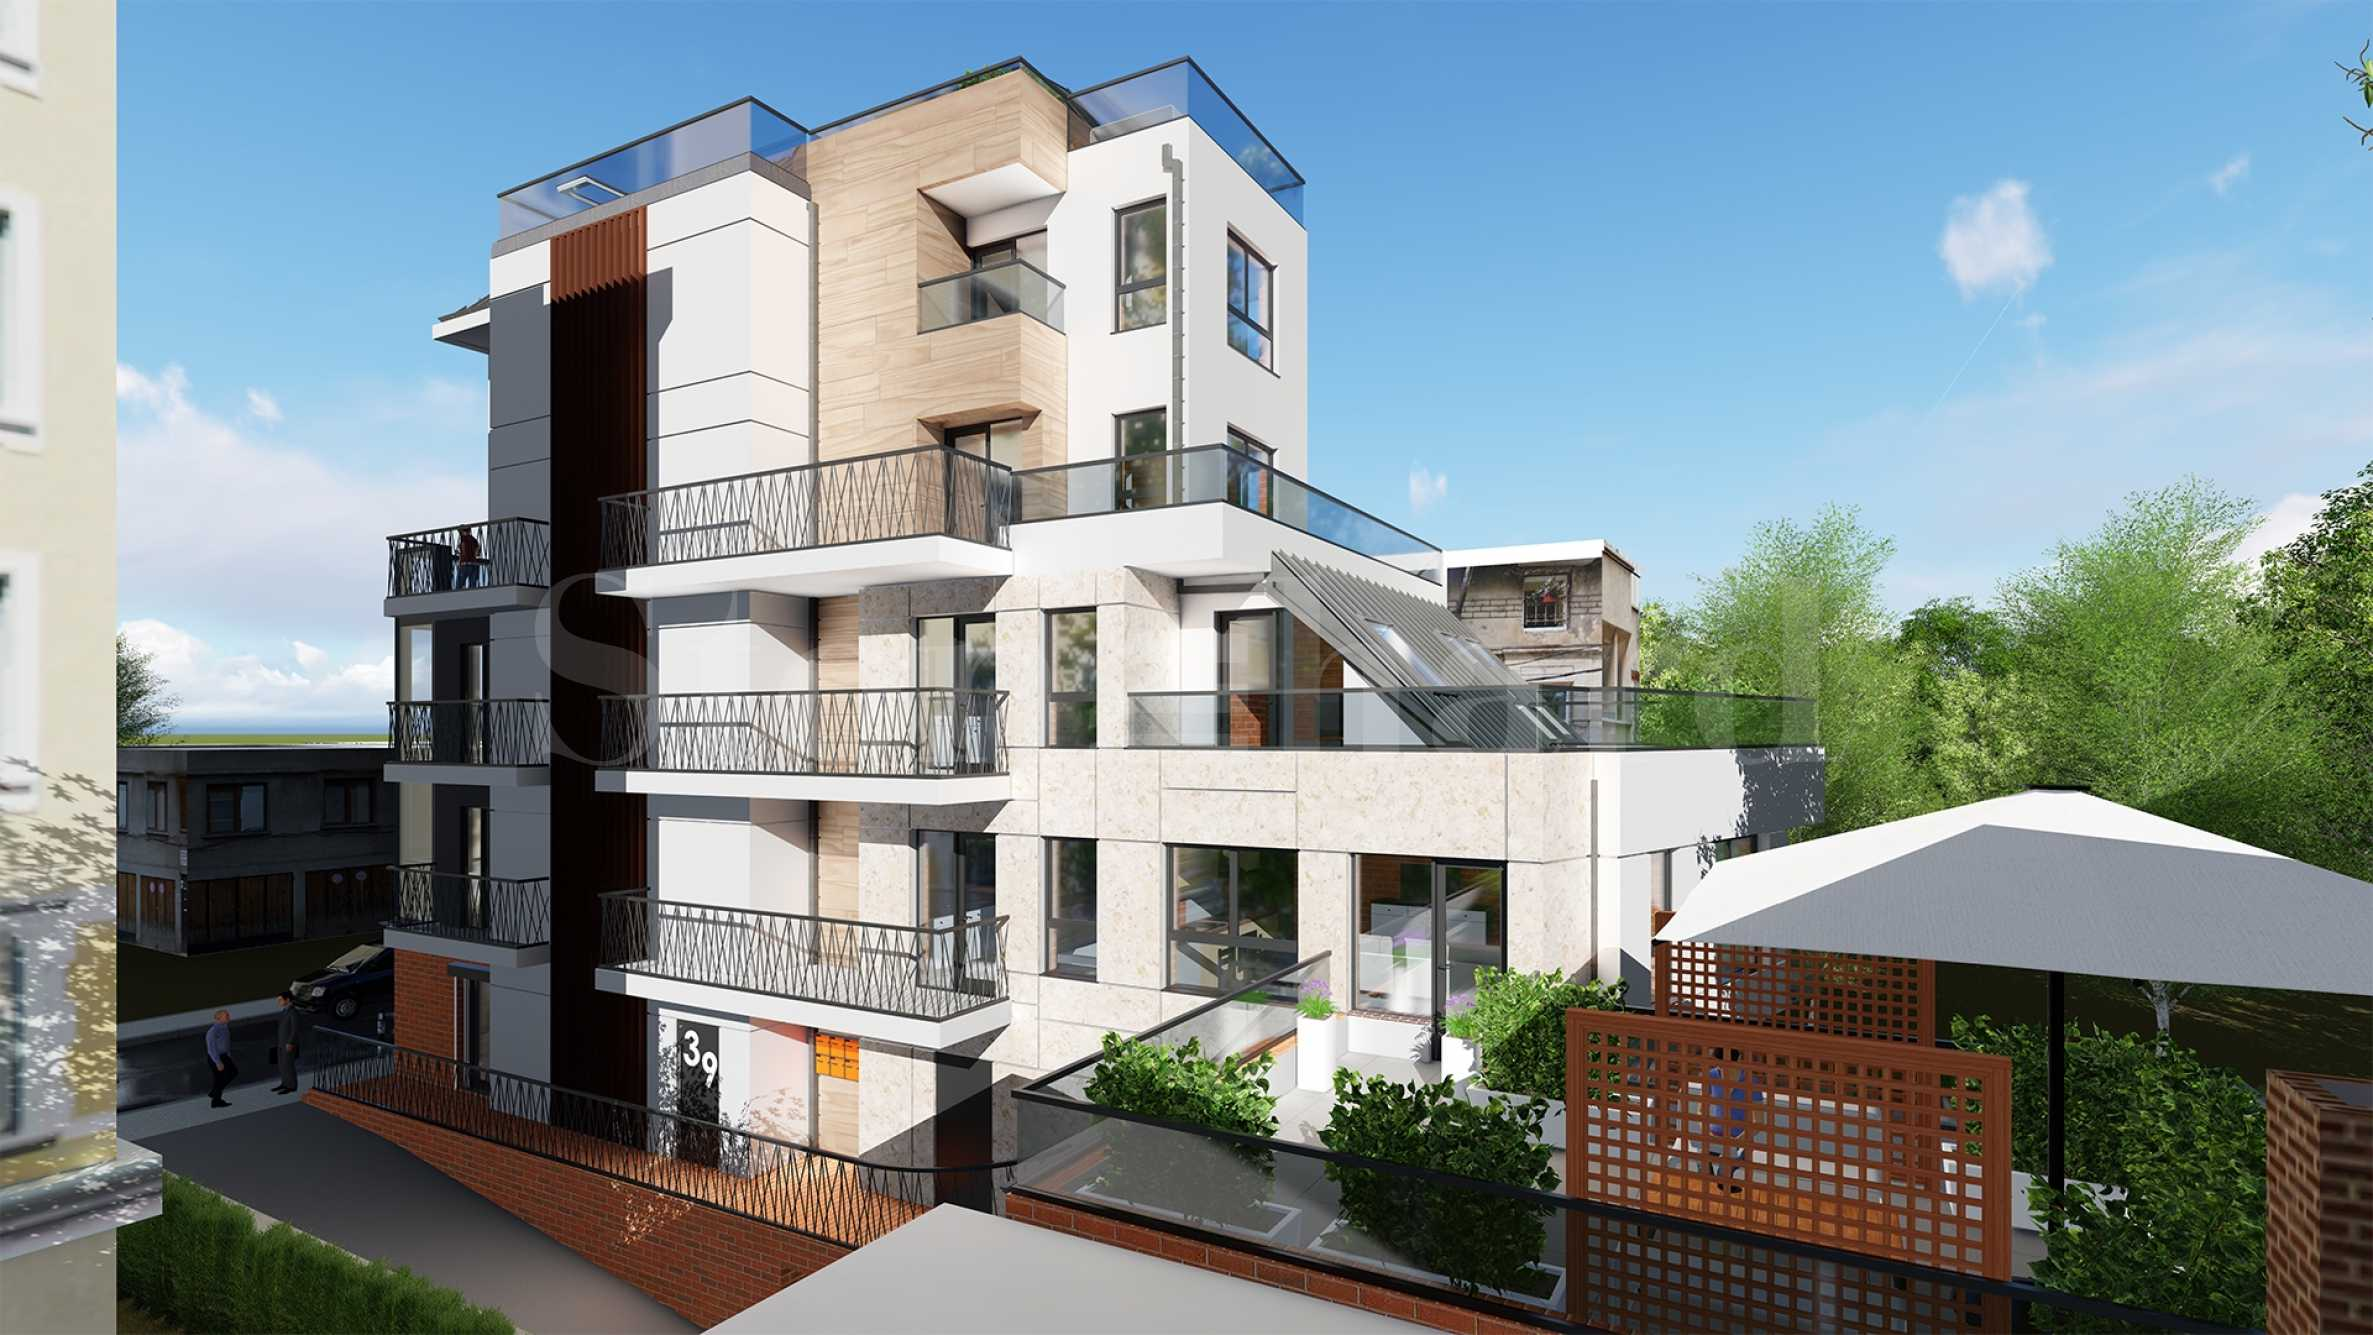 Apartments for sale in a boutique building in an attractive location2 - Stonehard